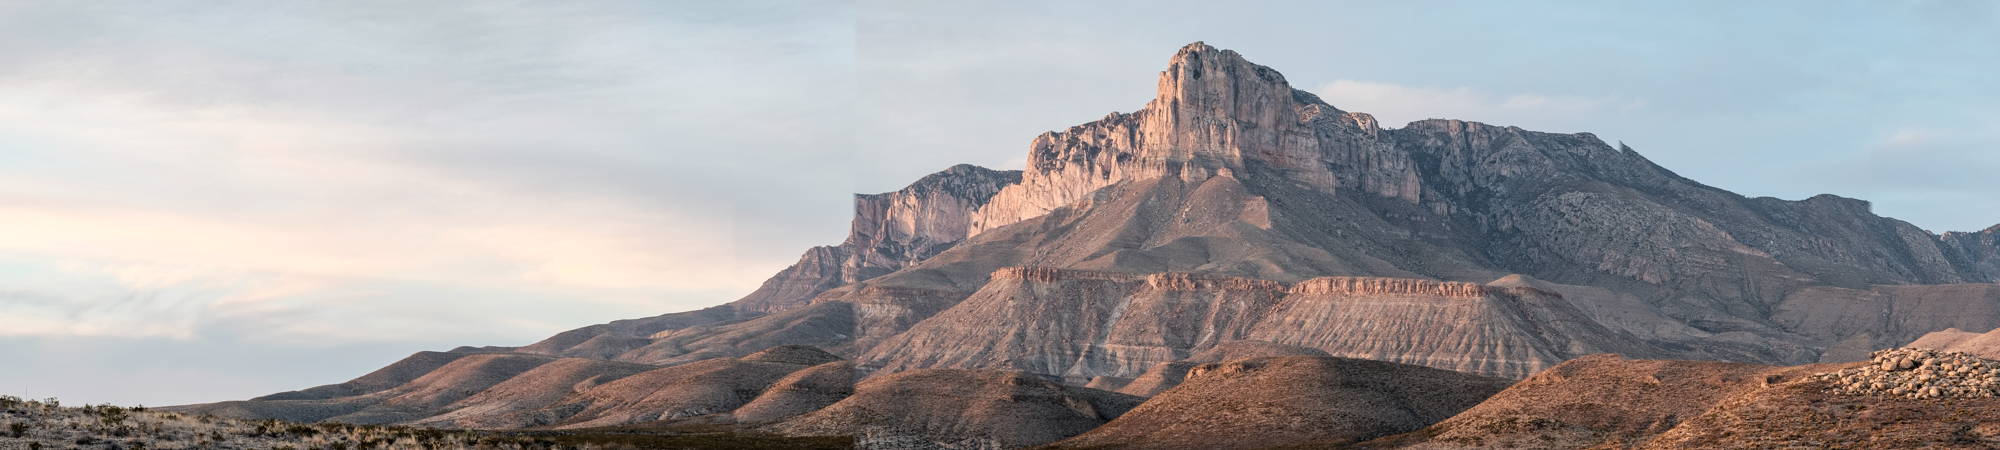 Panoramic of Guadalupe Mountain Peak.